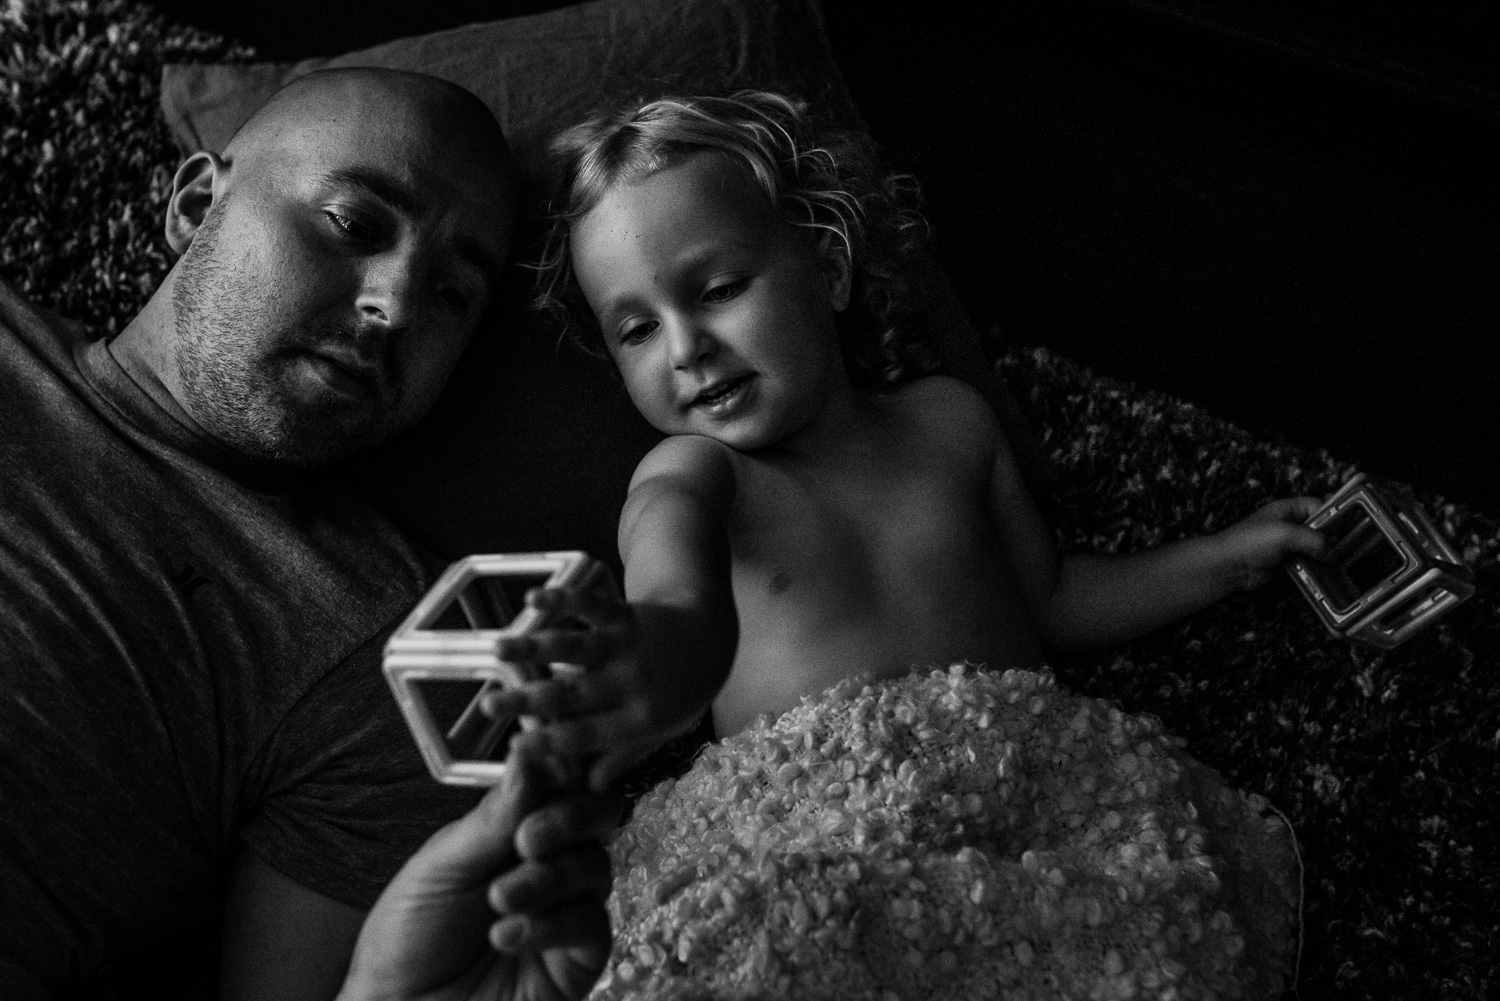 A black and white image of a toddler girl with curly hair and no shirt on laying on a partially carpeted floor with her dad who is bald with a scruffy beard and they are looking at magnet blocks together.